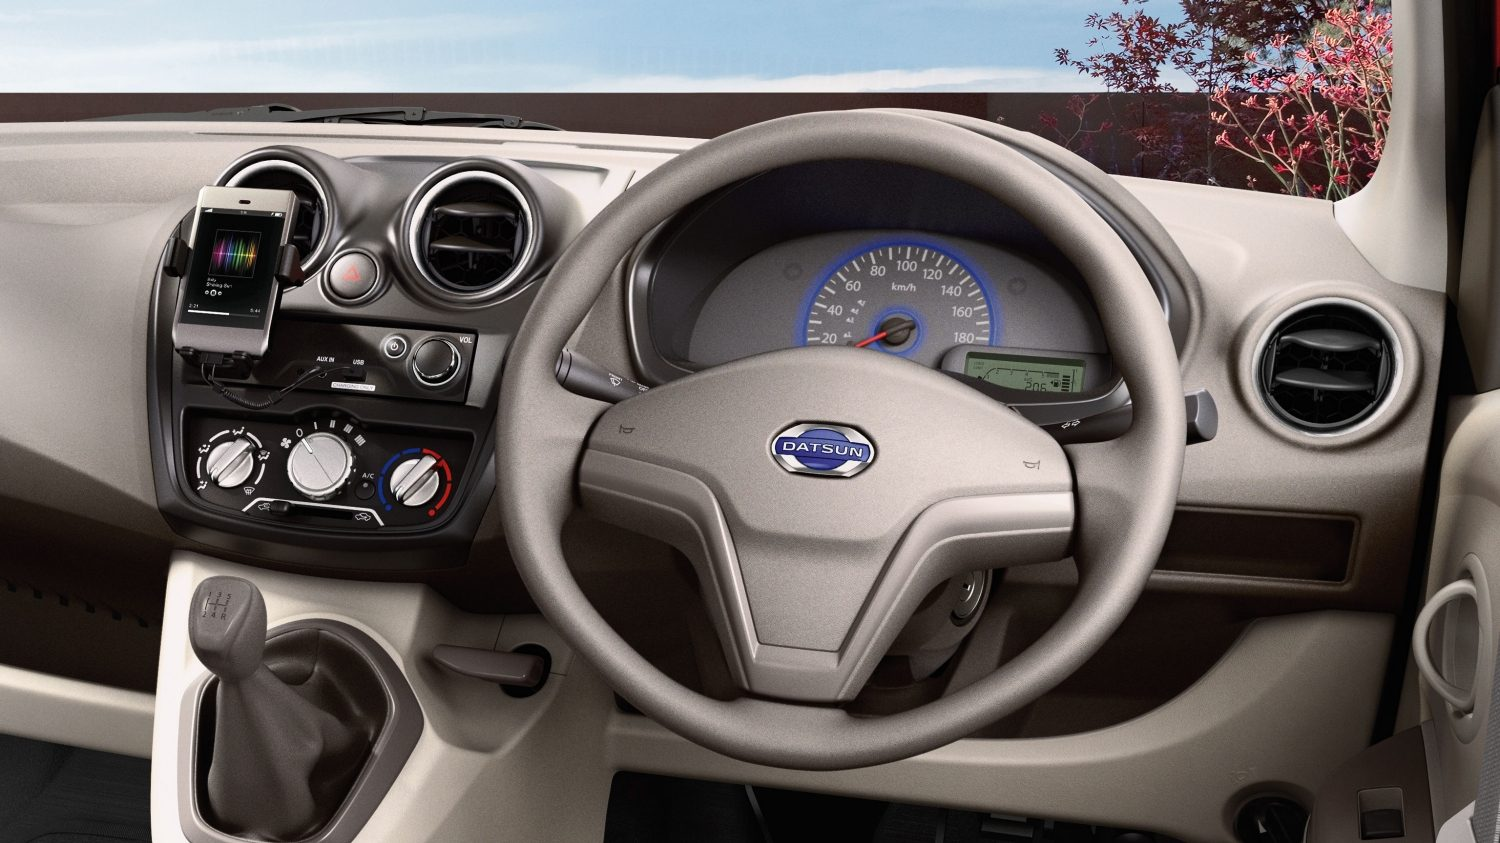 Datsun GO+ Steering Wheel